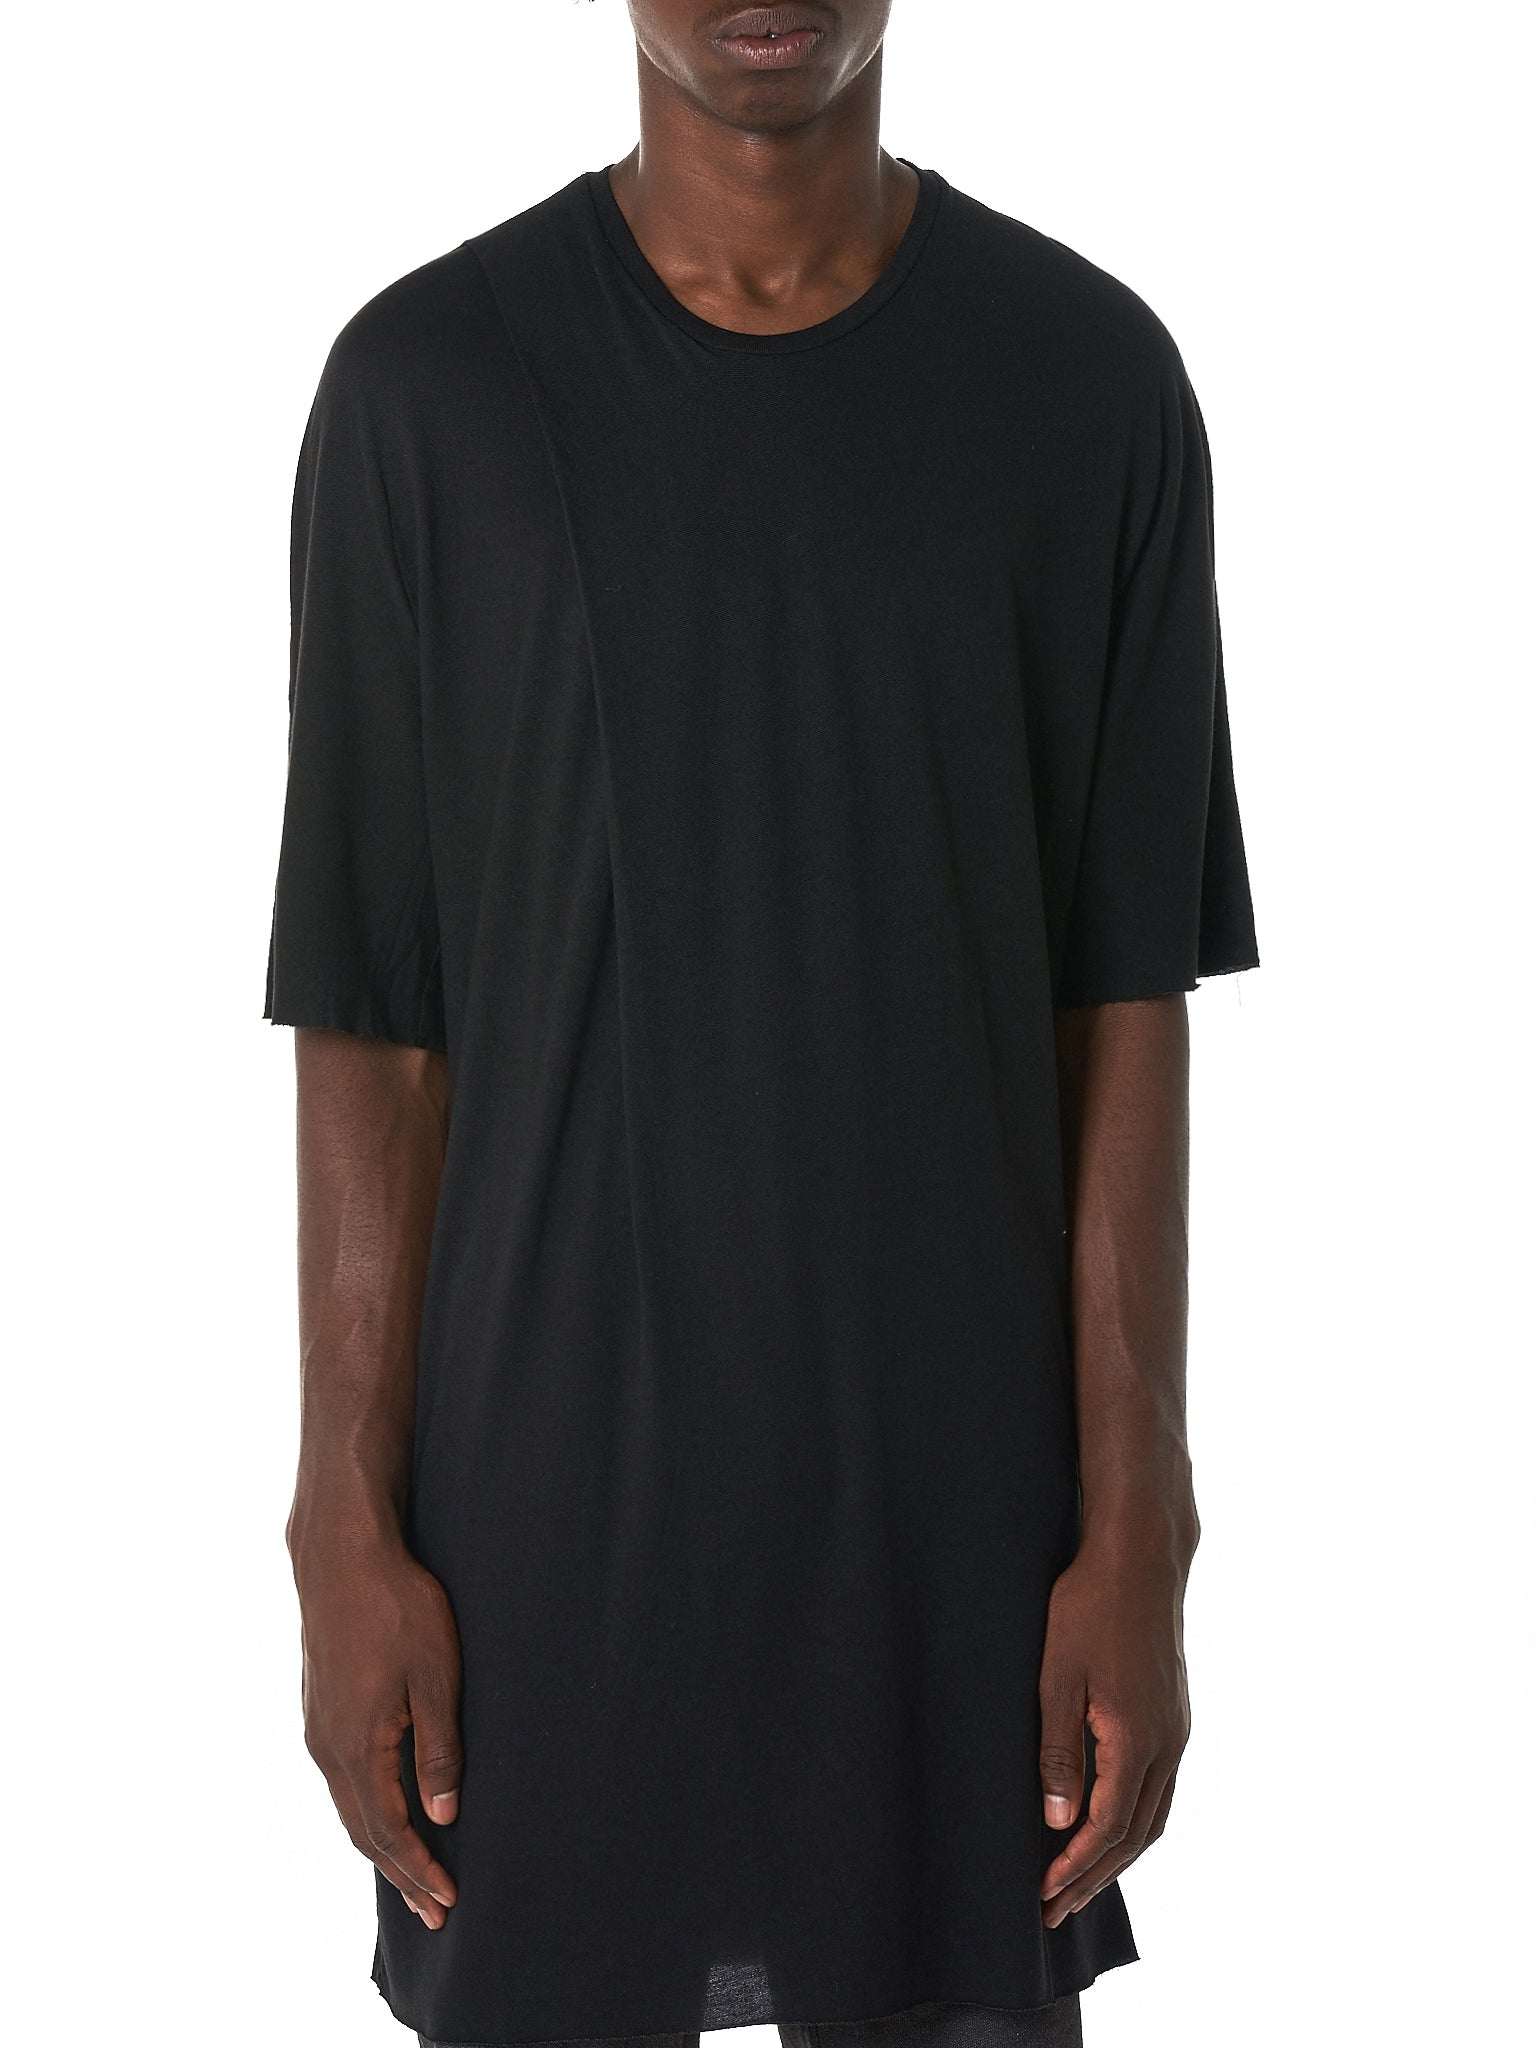 Lost & Found Tee - Hlorenzo Front